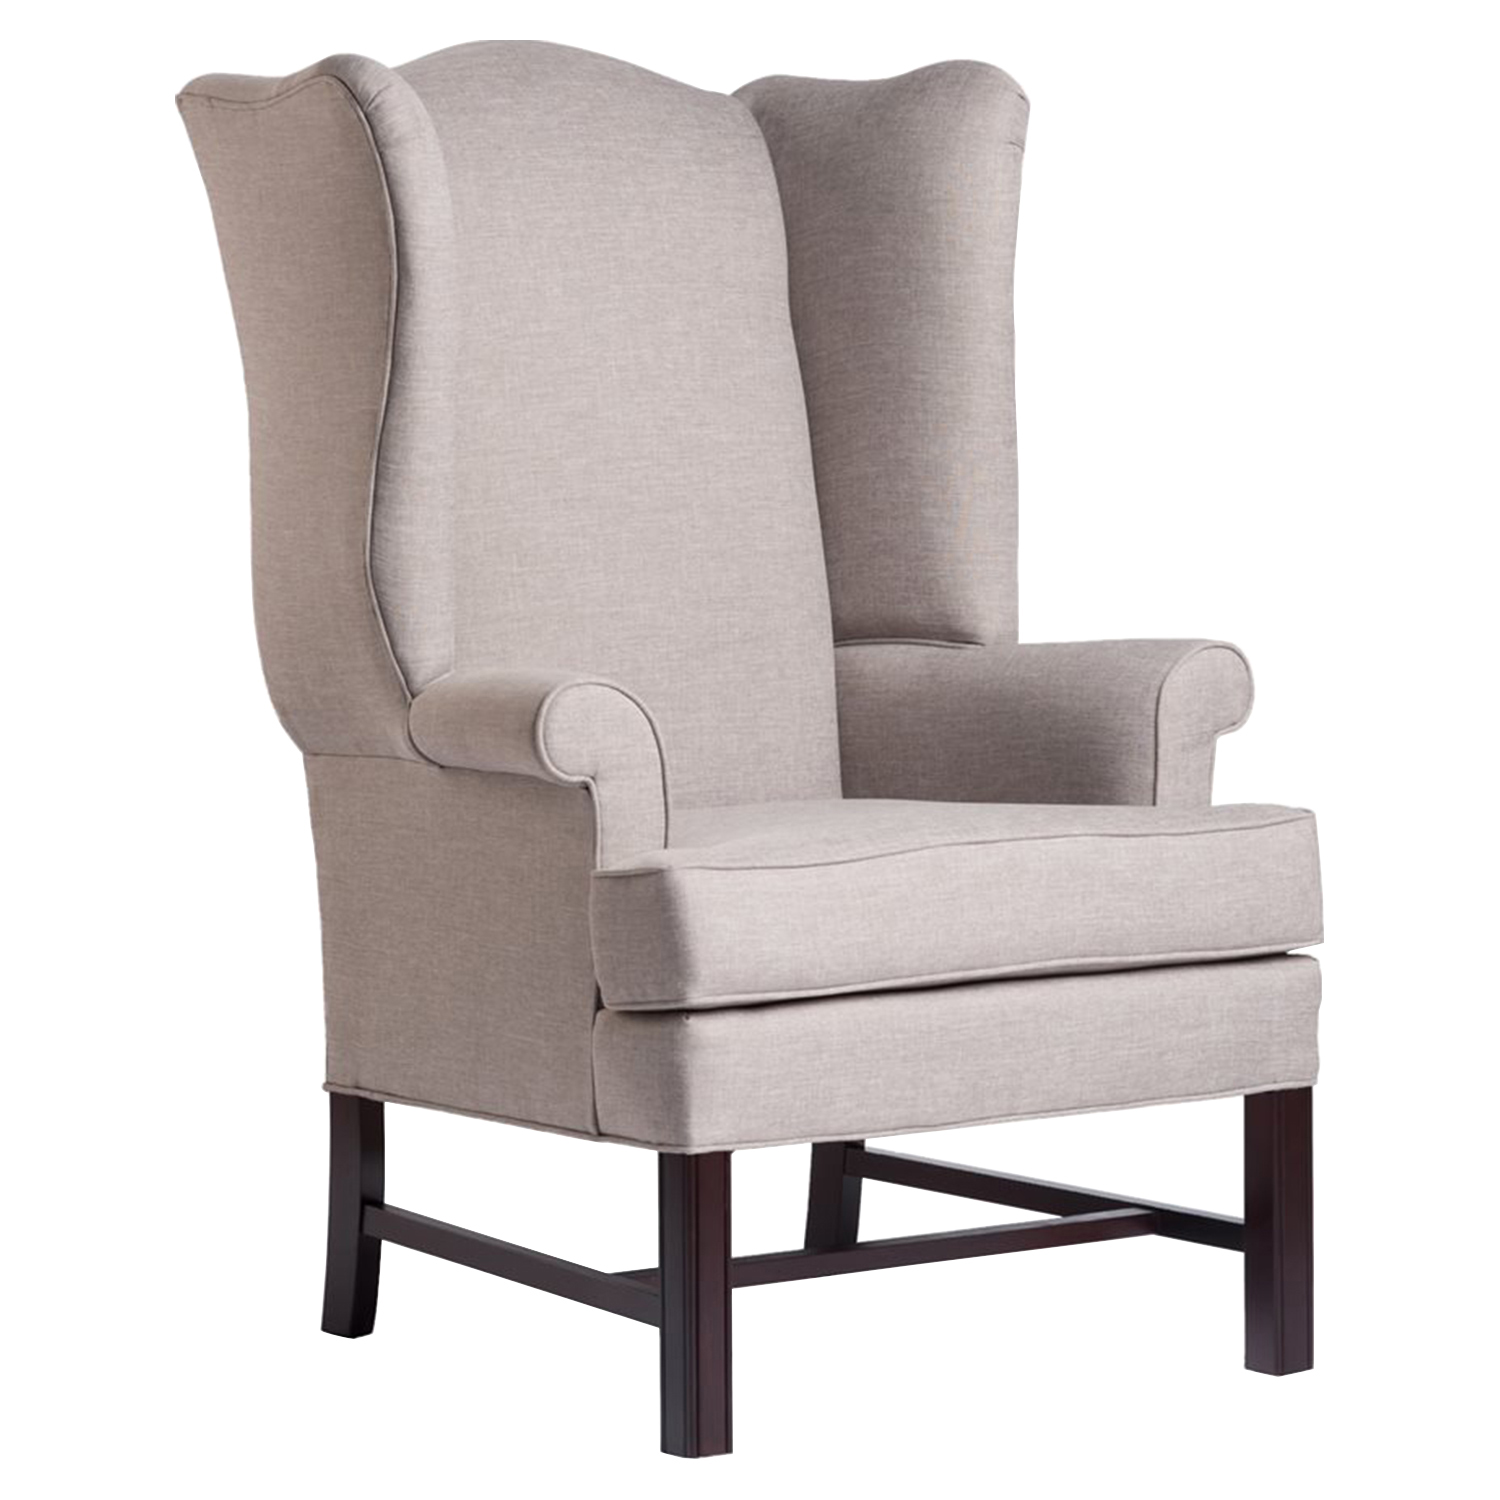 Chippendale Wingback Chair - Jitterbug Linen, Cherry